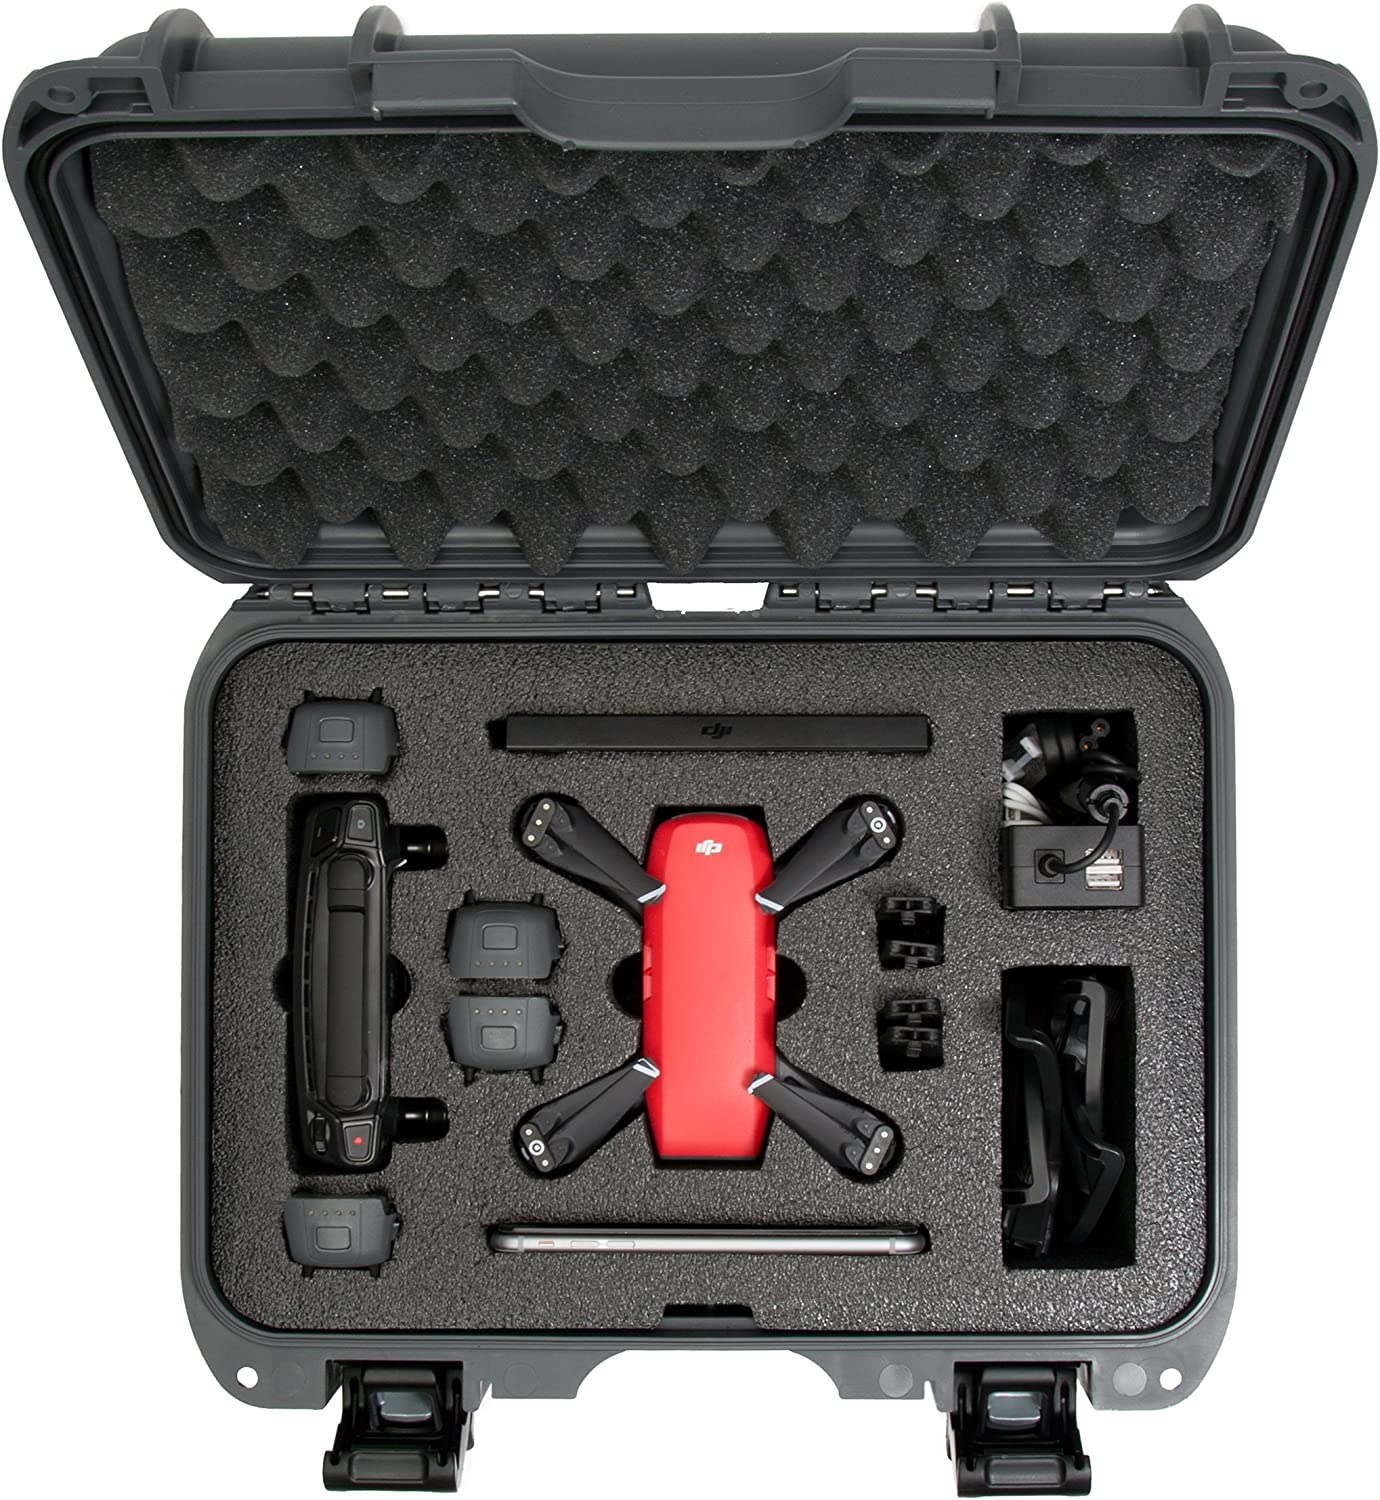 Nanuk 915 Waterproof Hard Drone Case with Custom Foam Insert for DJI Spark Flymore Black